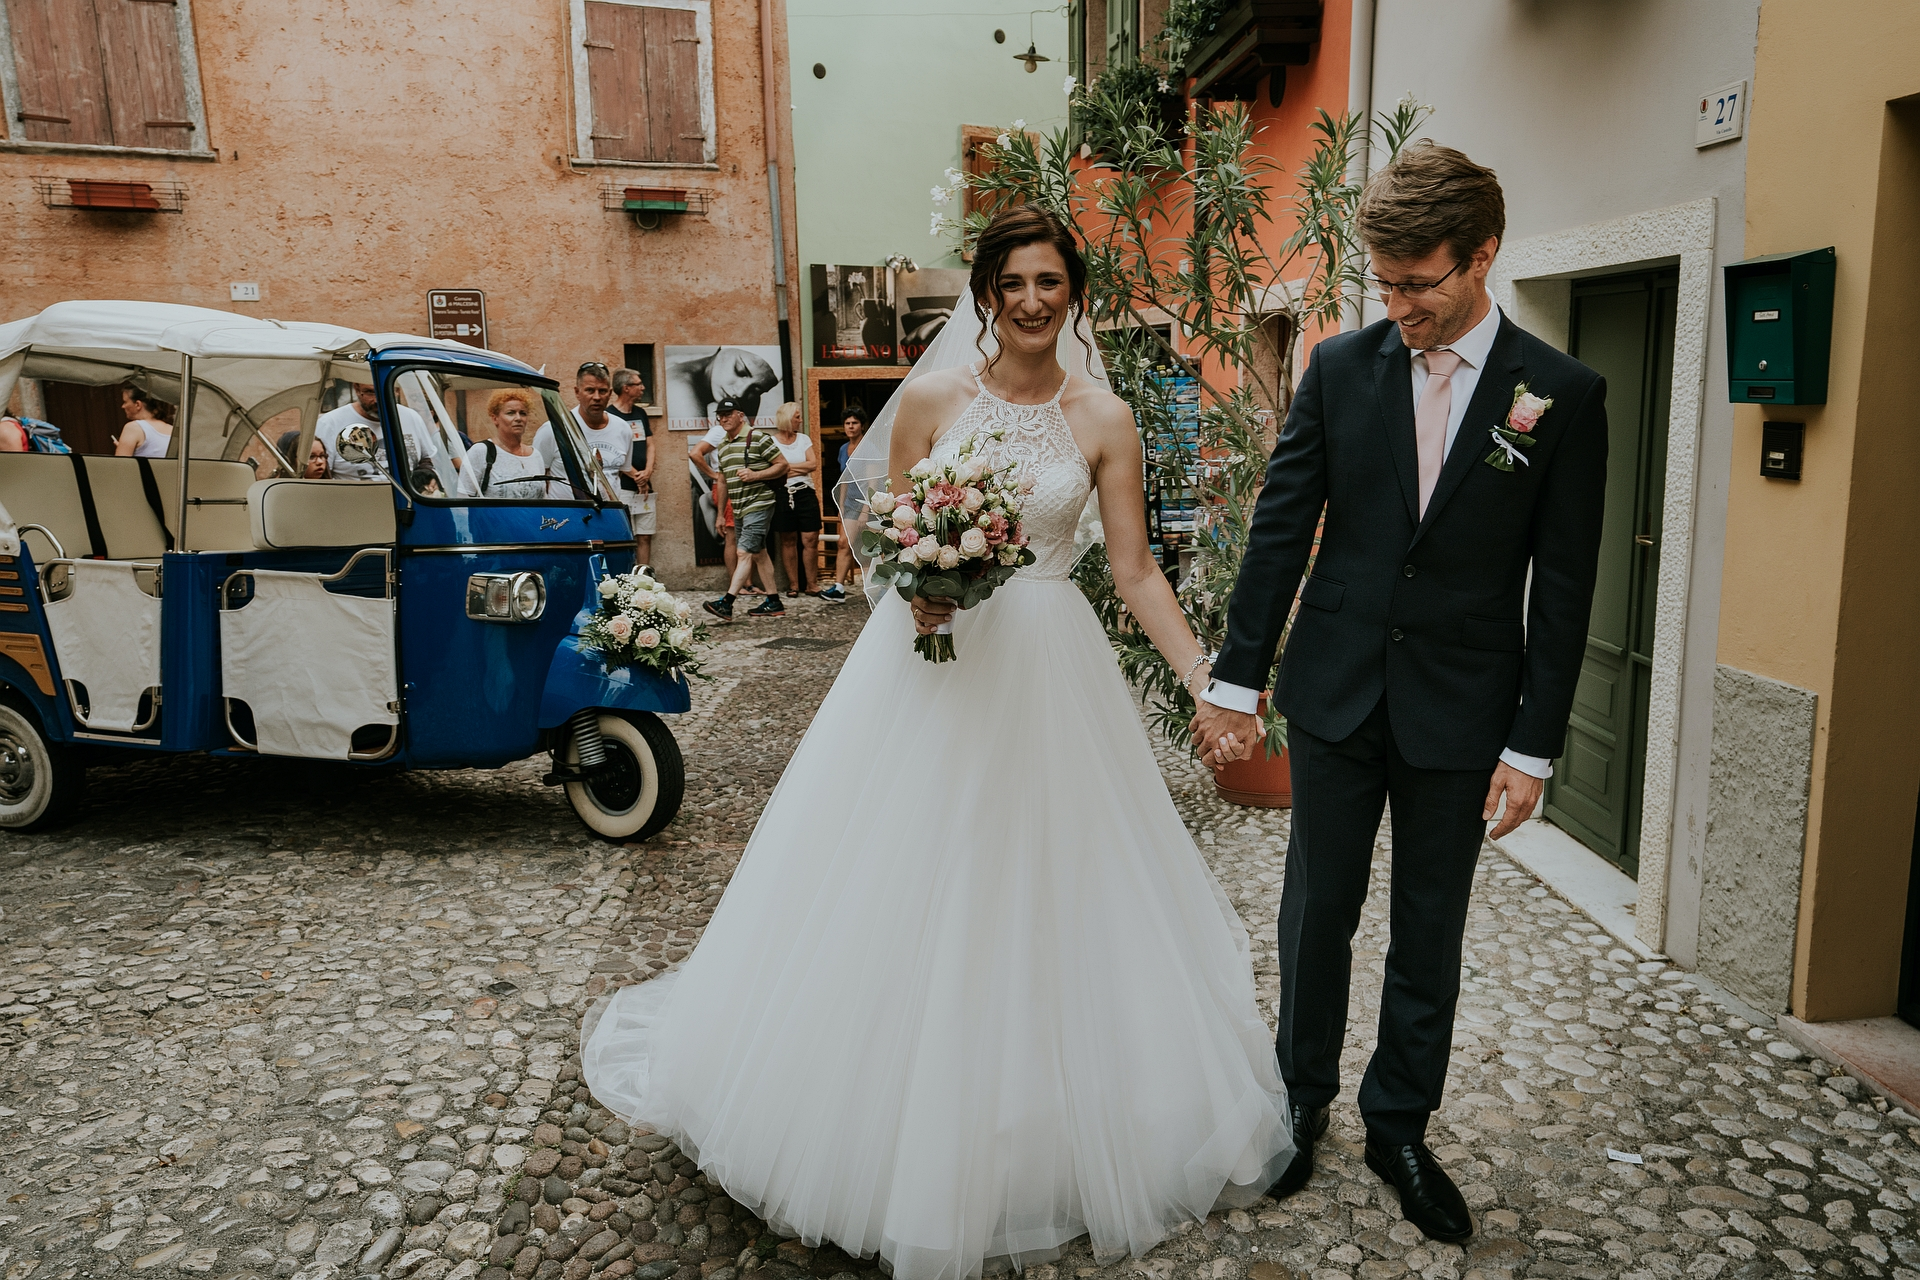 Scaliger Castle, Malcesine - Italy Elopement Picture | The bride and groom have arrived at the foot of the Scaliger Castle